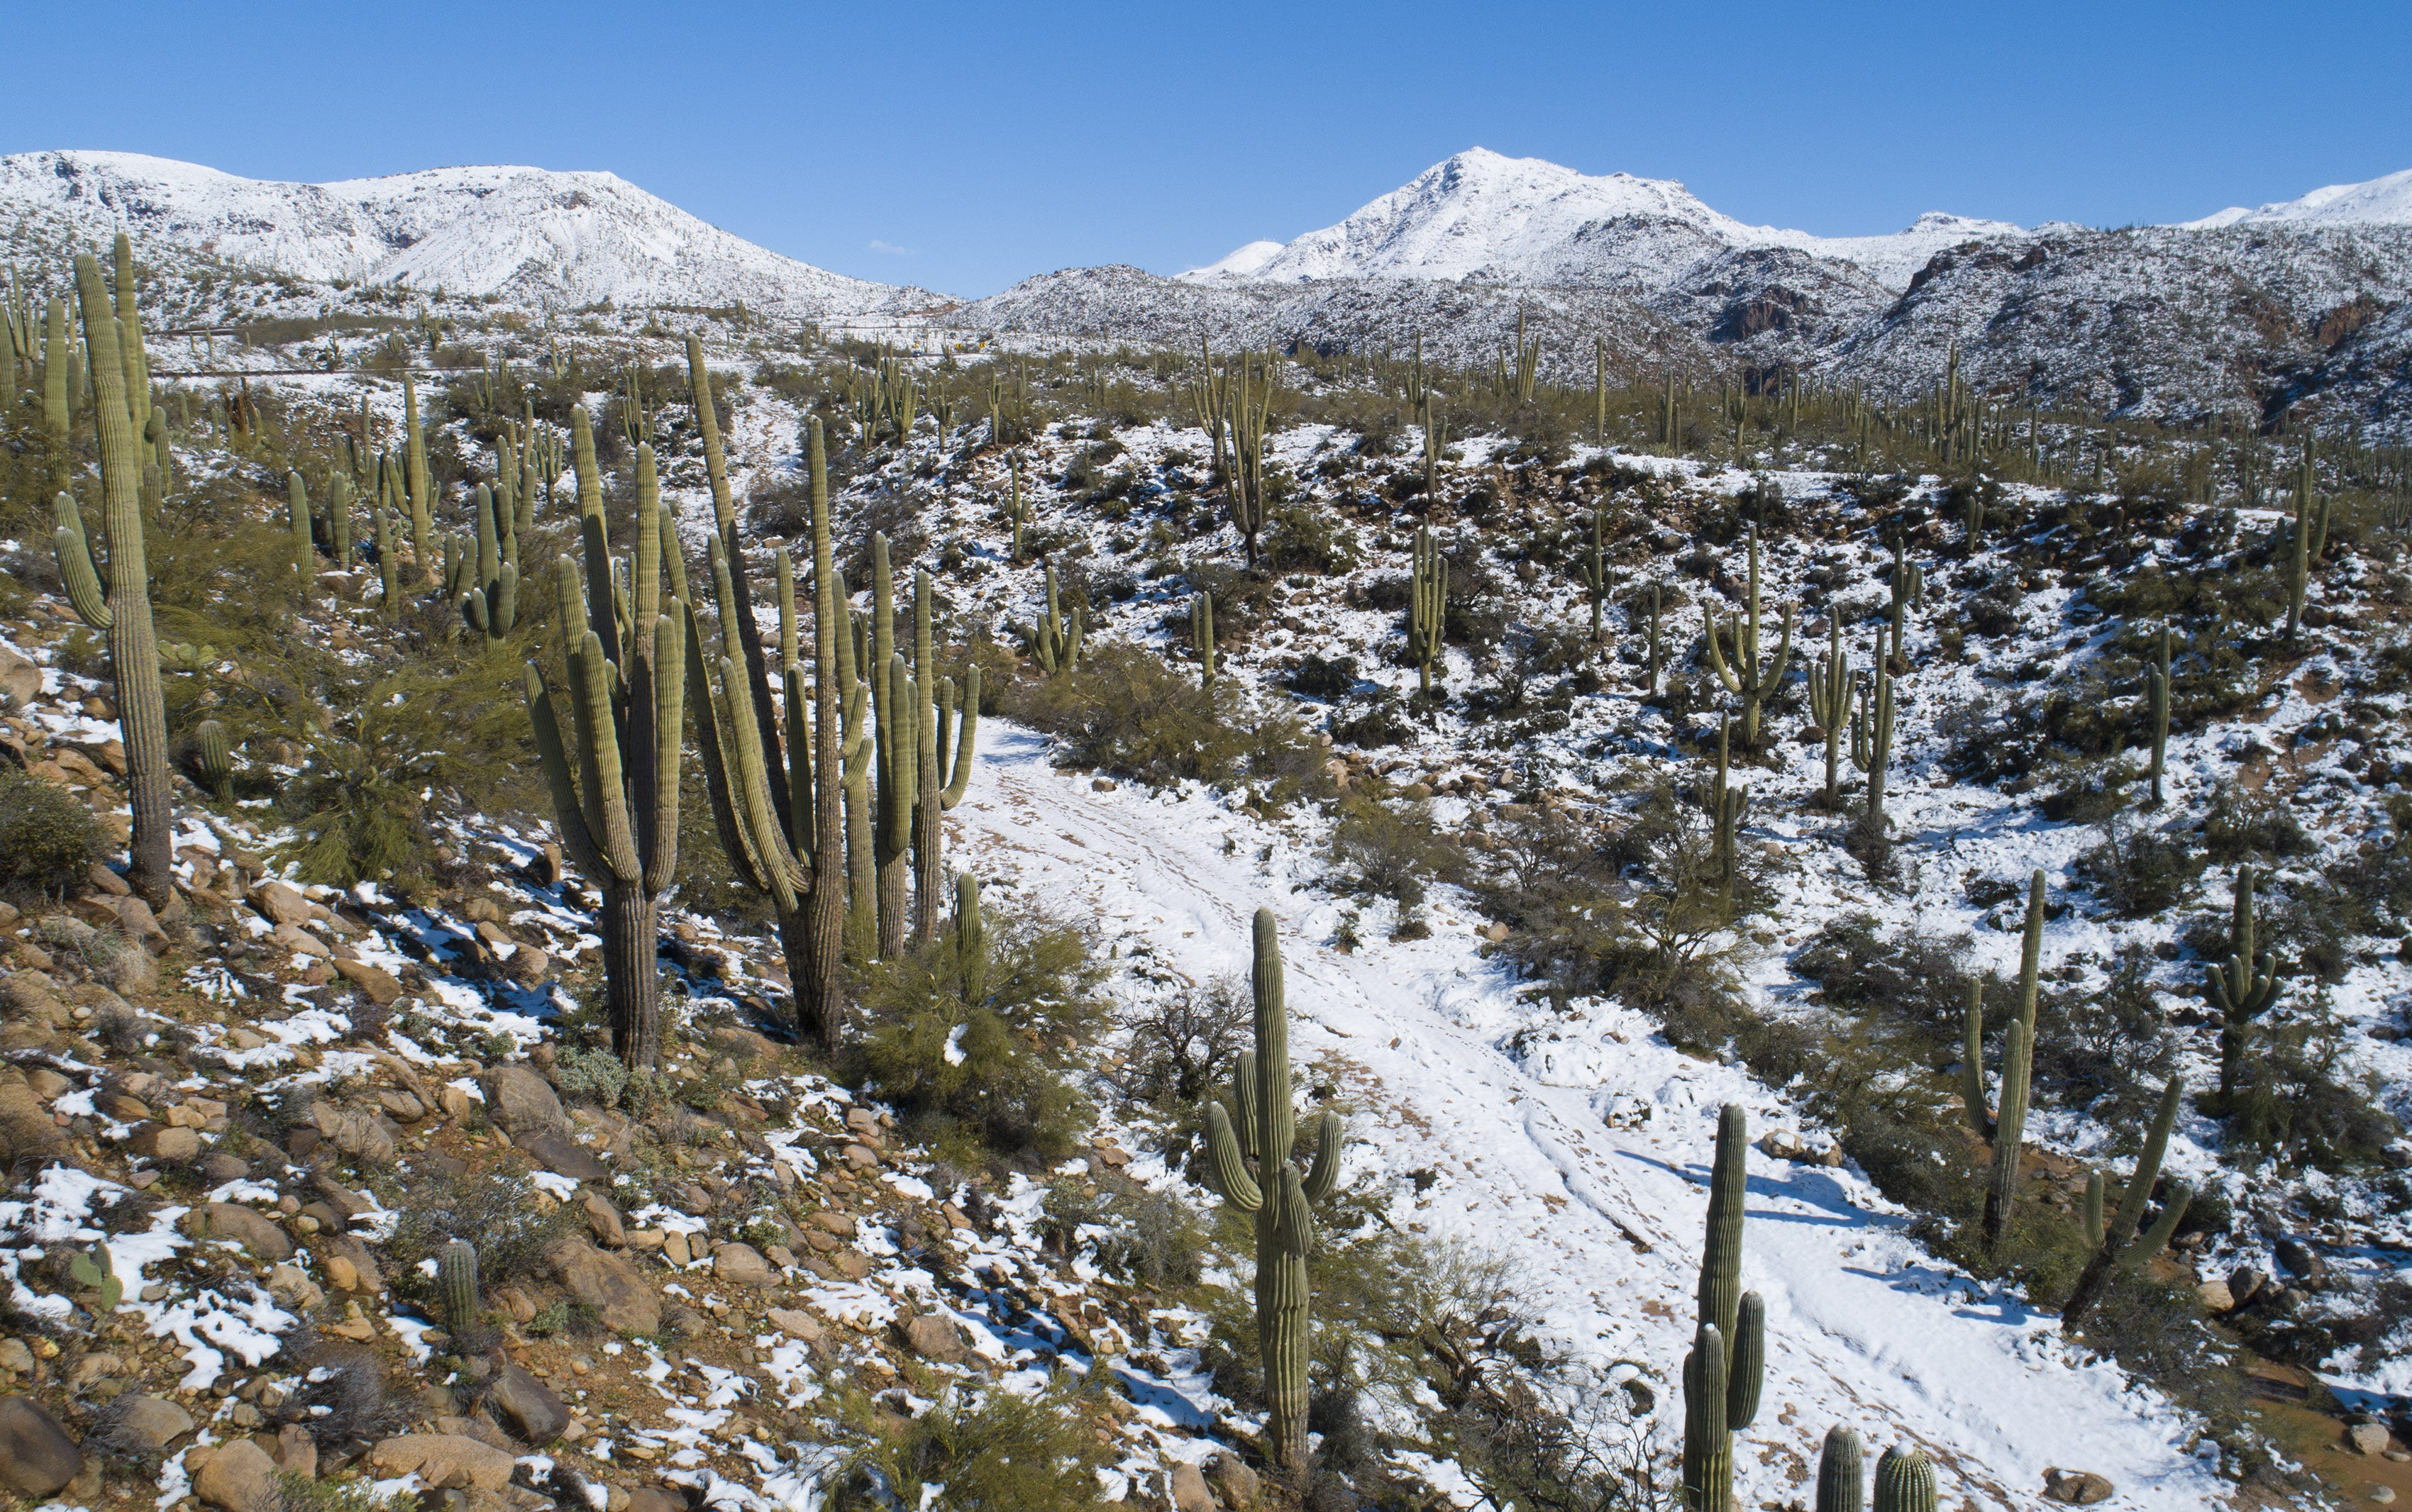 Winter's wallop: Snow, rain leave their mark, but next week will bring a different story | Arizona Central